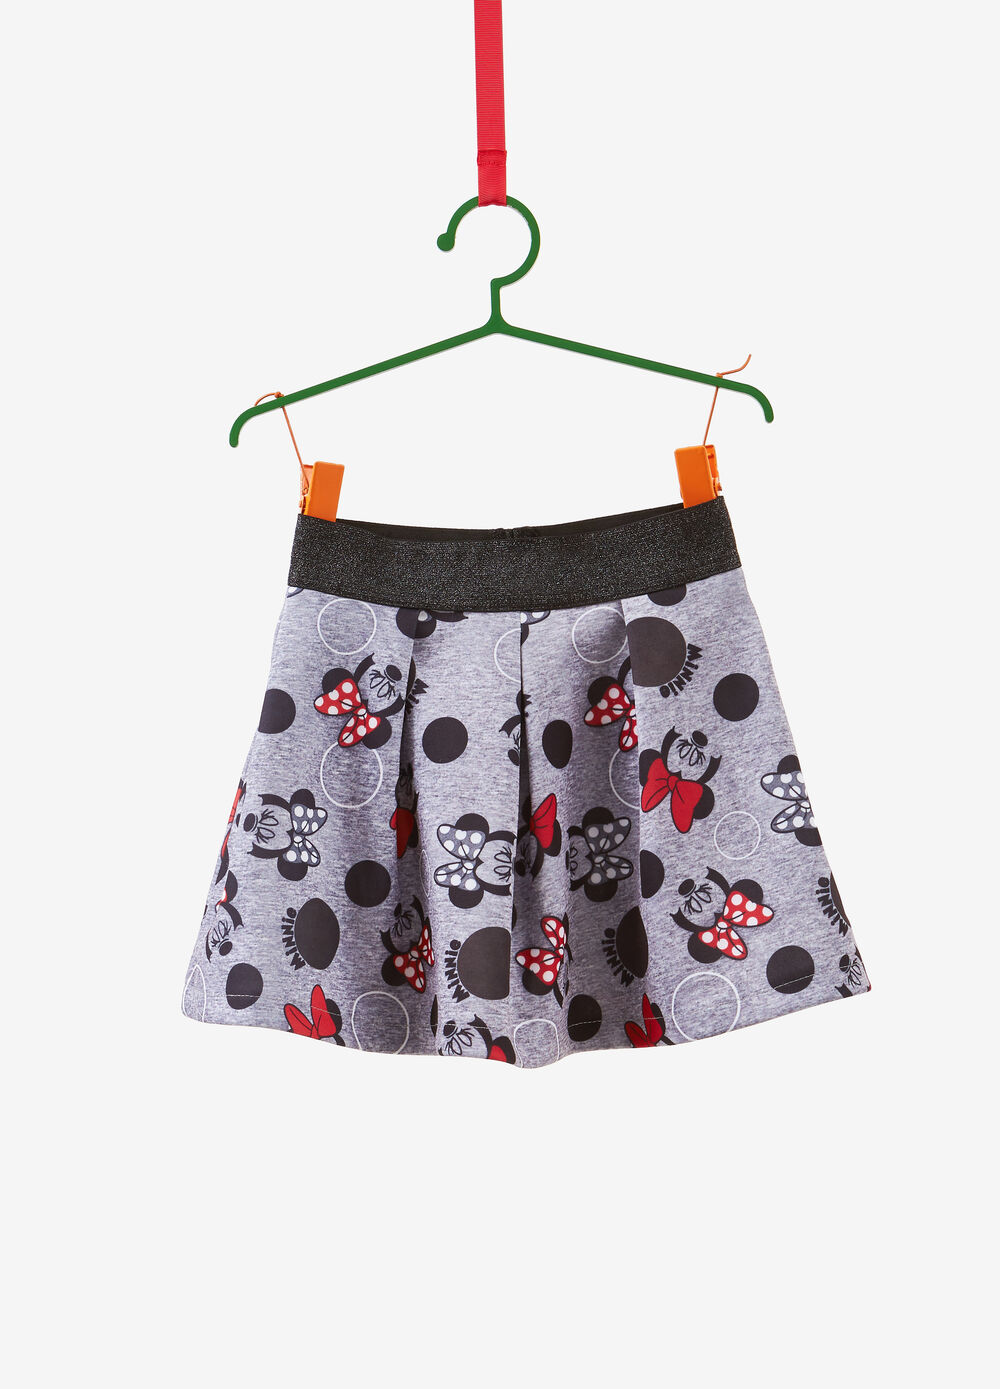 Stretch skirt with Minnie Mouse pattern